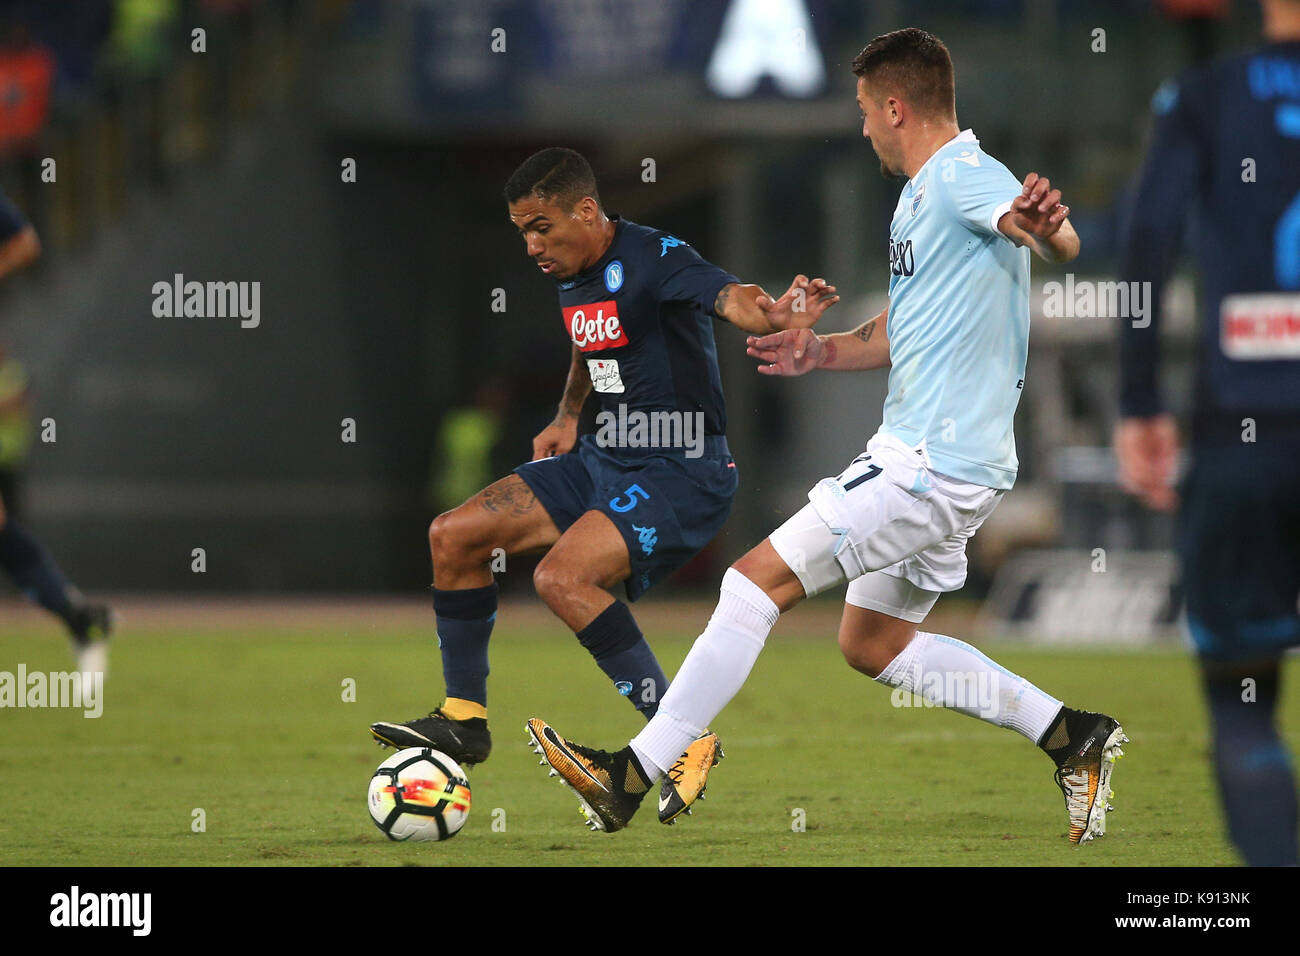 Italy, Rome, September 20, 2017:Allan in action during the football match Serie A Lazio vs Napoli in Olimpic Stadium - Stock Image